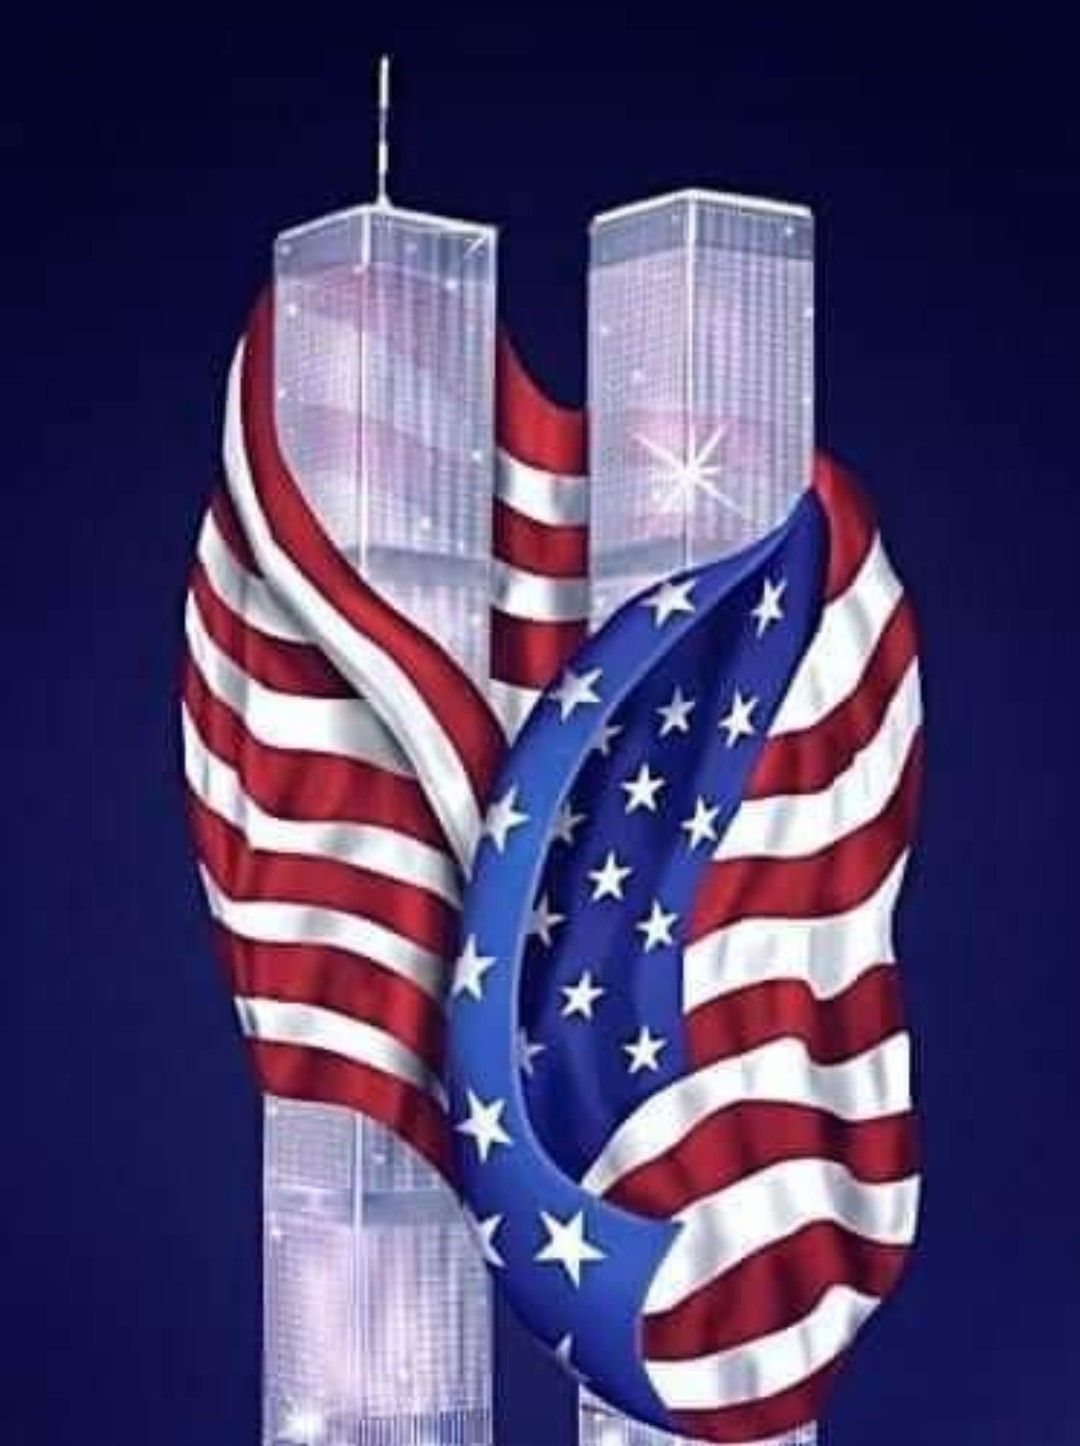 Pin By Karen Clymer On Merica Patriotic Pictures I Love America American Flag